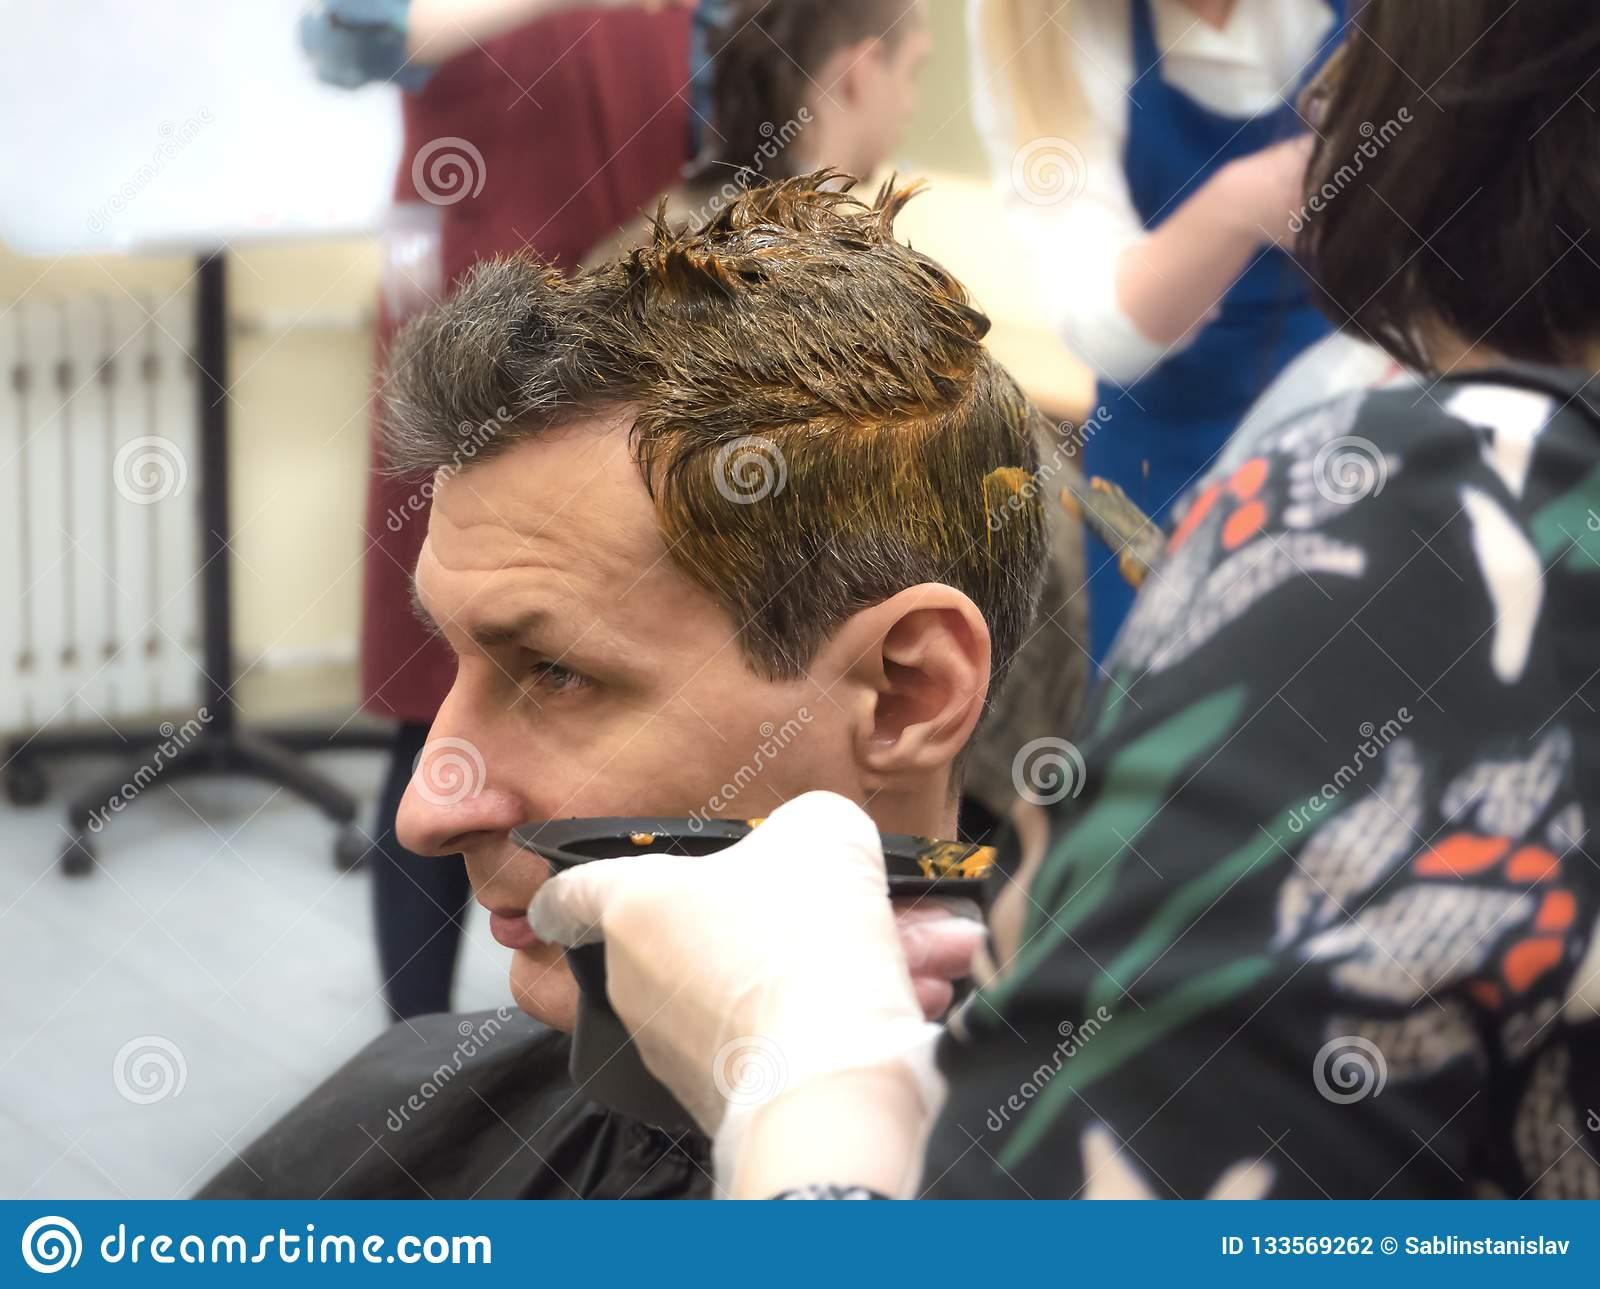 Hair coloring on a man in a beauty salon. Close up